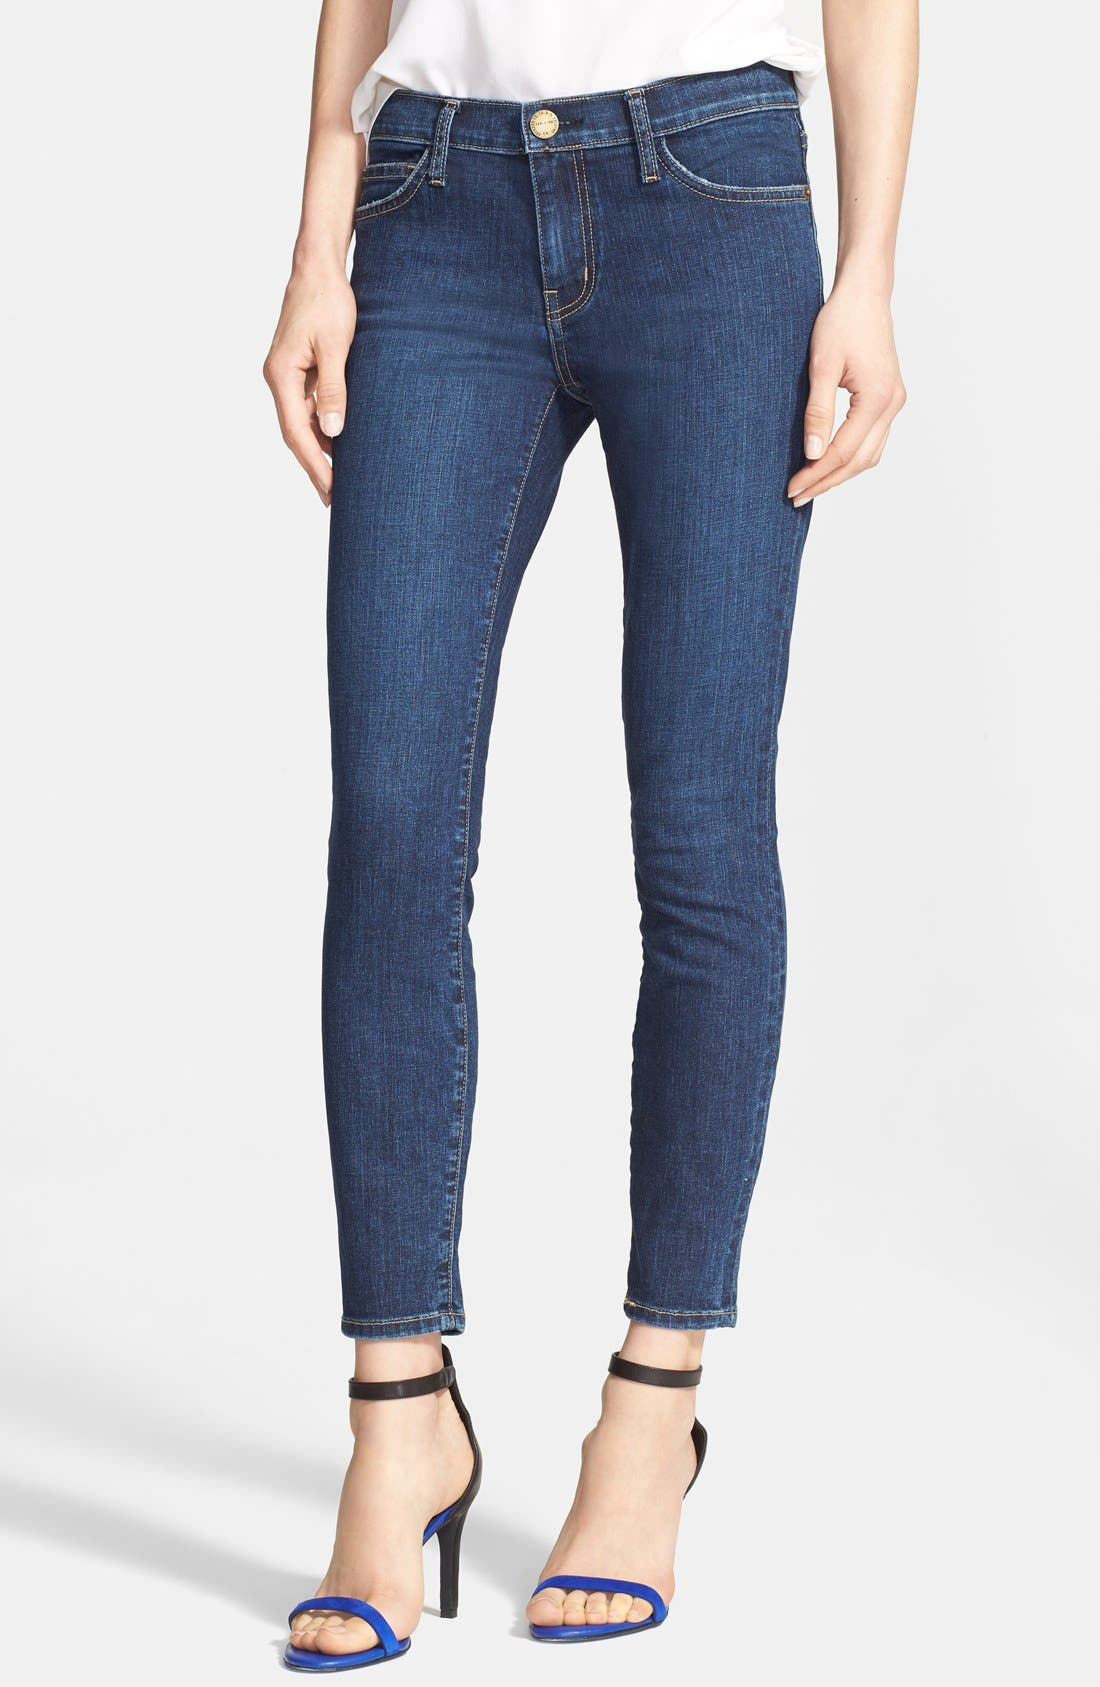 Alternate Image 1 Selected - Current/Elliott 'The Stiletto' Stretch Skinny Jeans (Reconaissance)